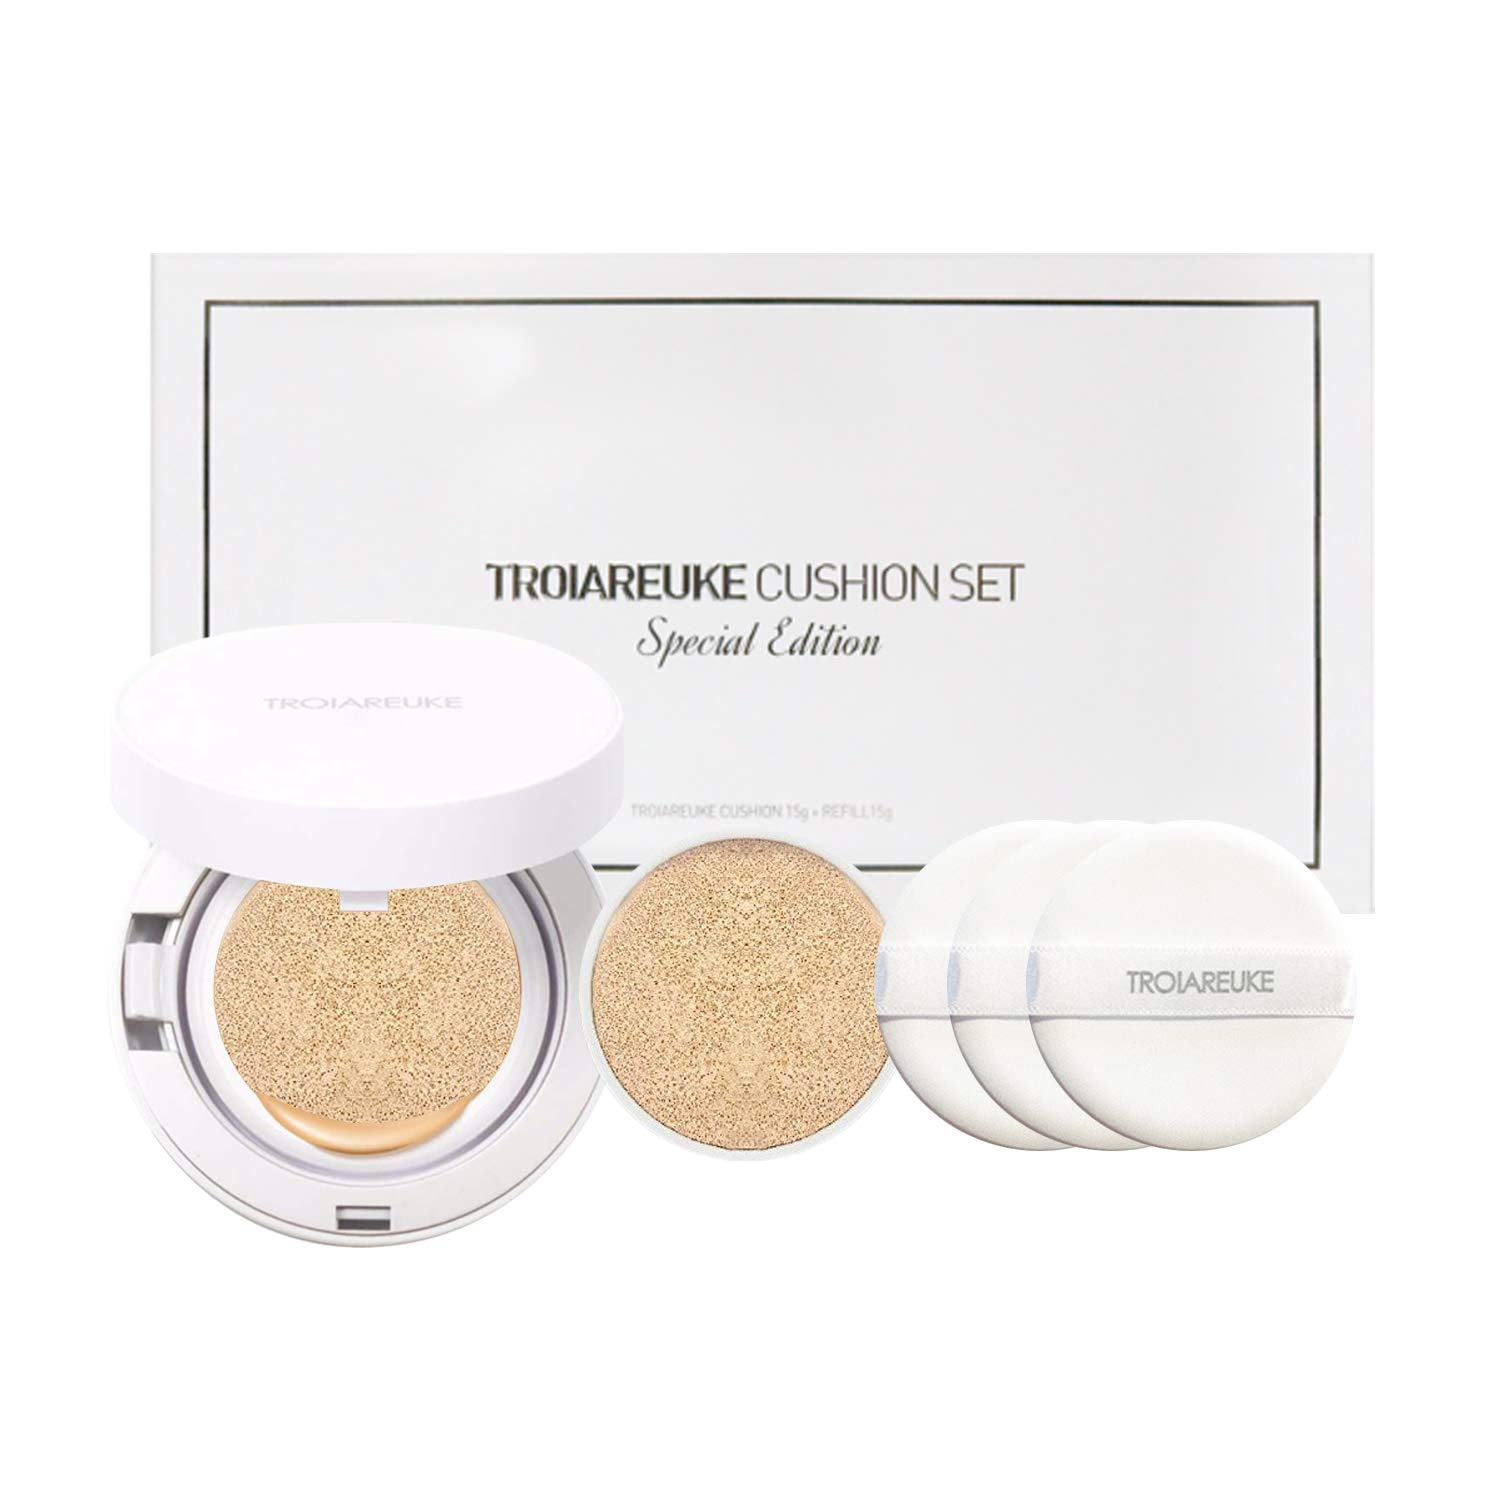 TROIAREUKE Korean Skincare A+ Cushion Foundation + Refill, 21 Light Beige SPF50+ PA++++ - K Beauty Longwear Make-up BB CC Cream Compact for Oily Acne Sensitive Skin Gift Set